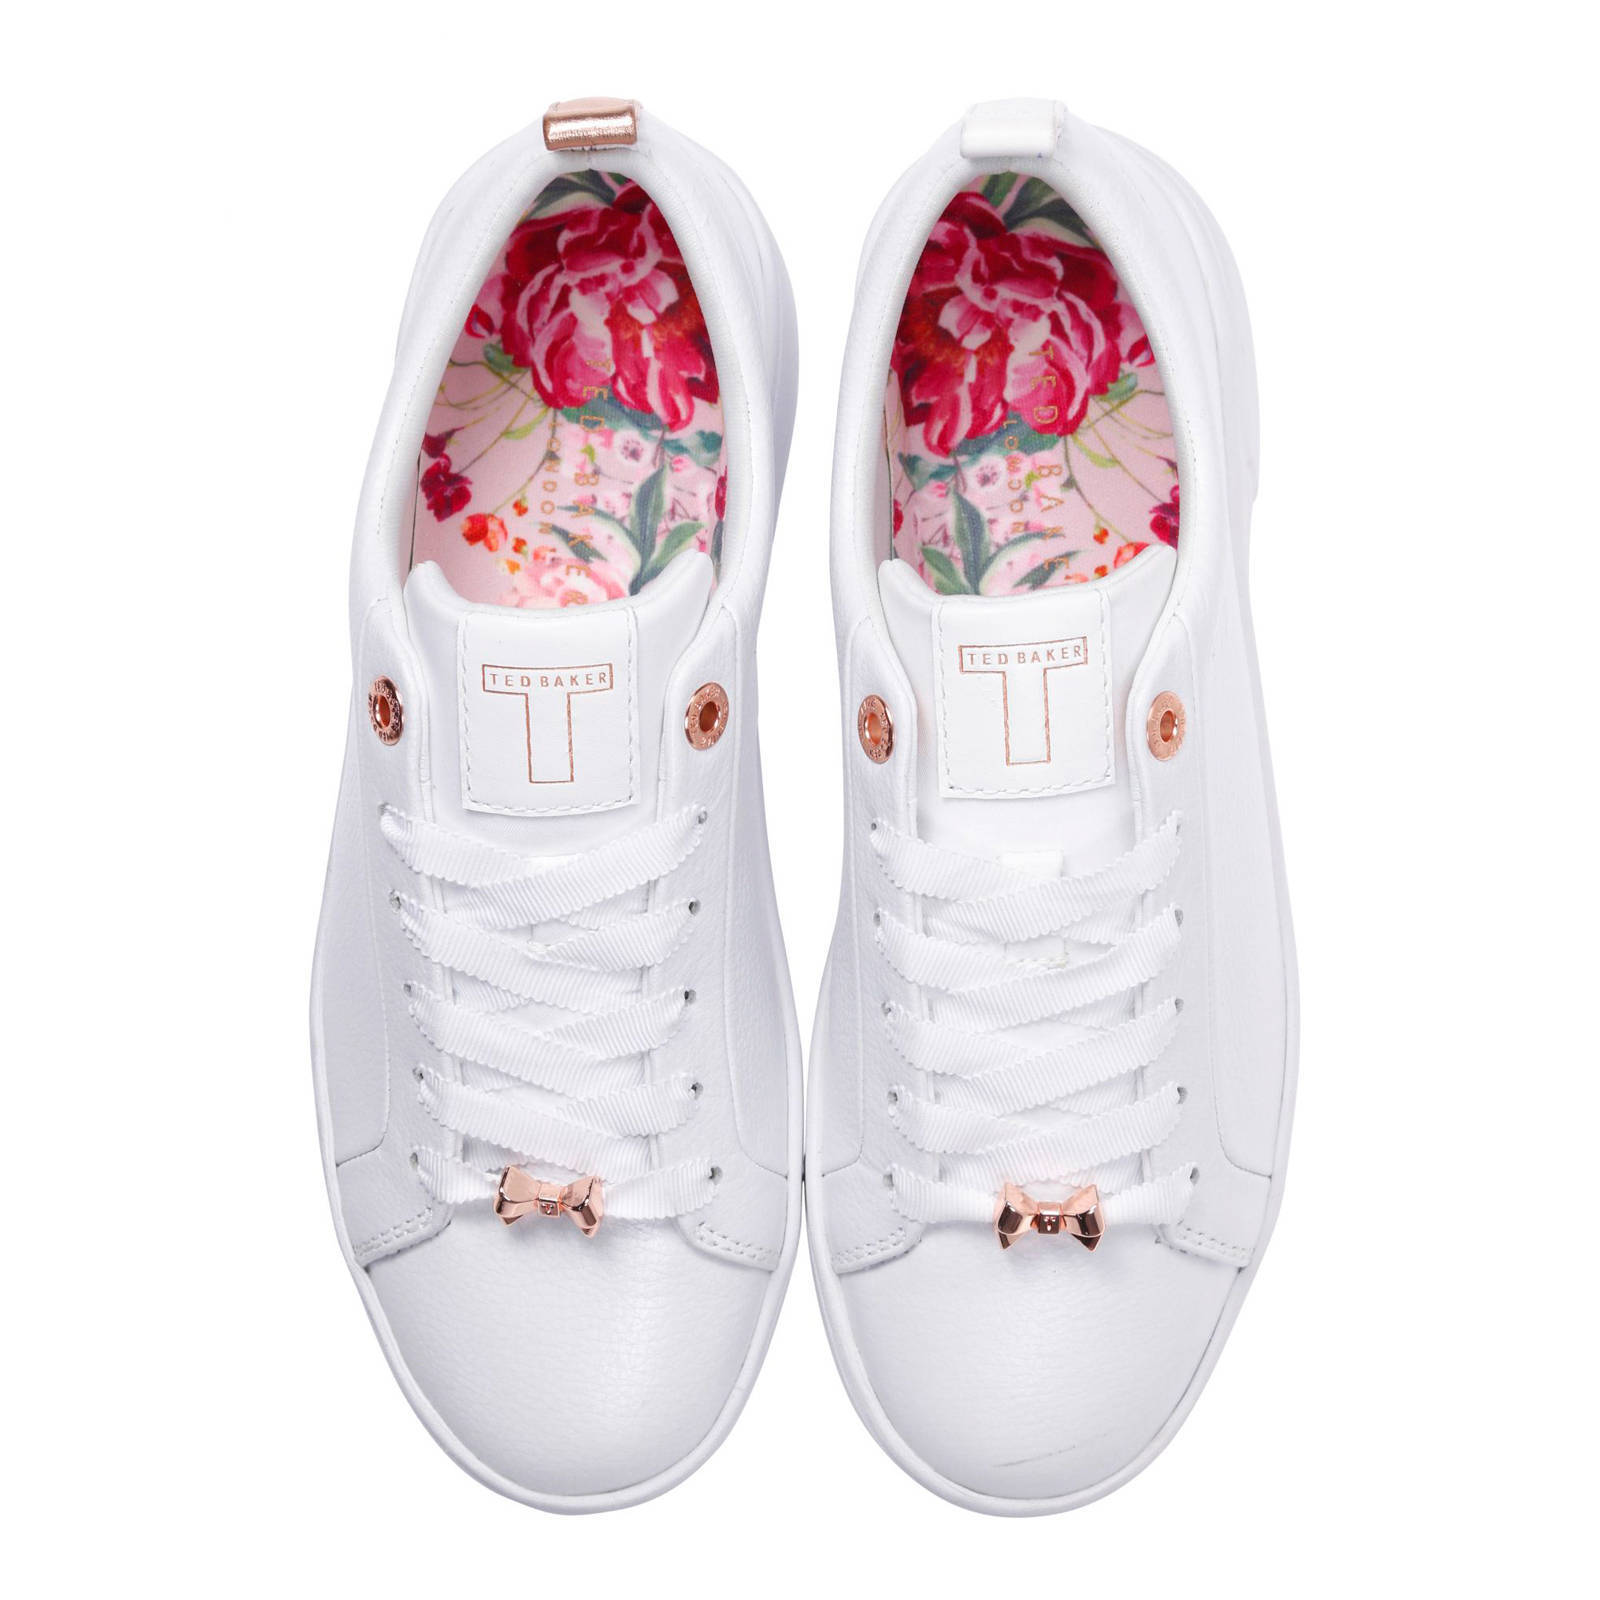 first look later uk availability Ted Baker leren sneakers Gielli wit | wehkamp